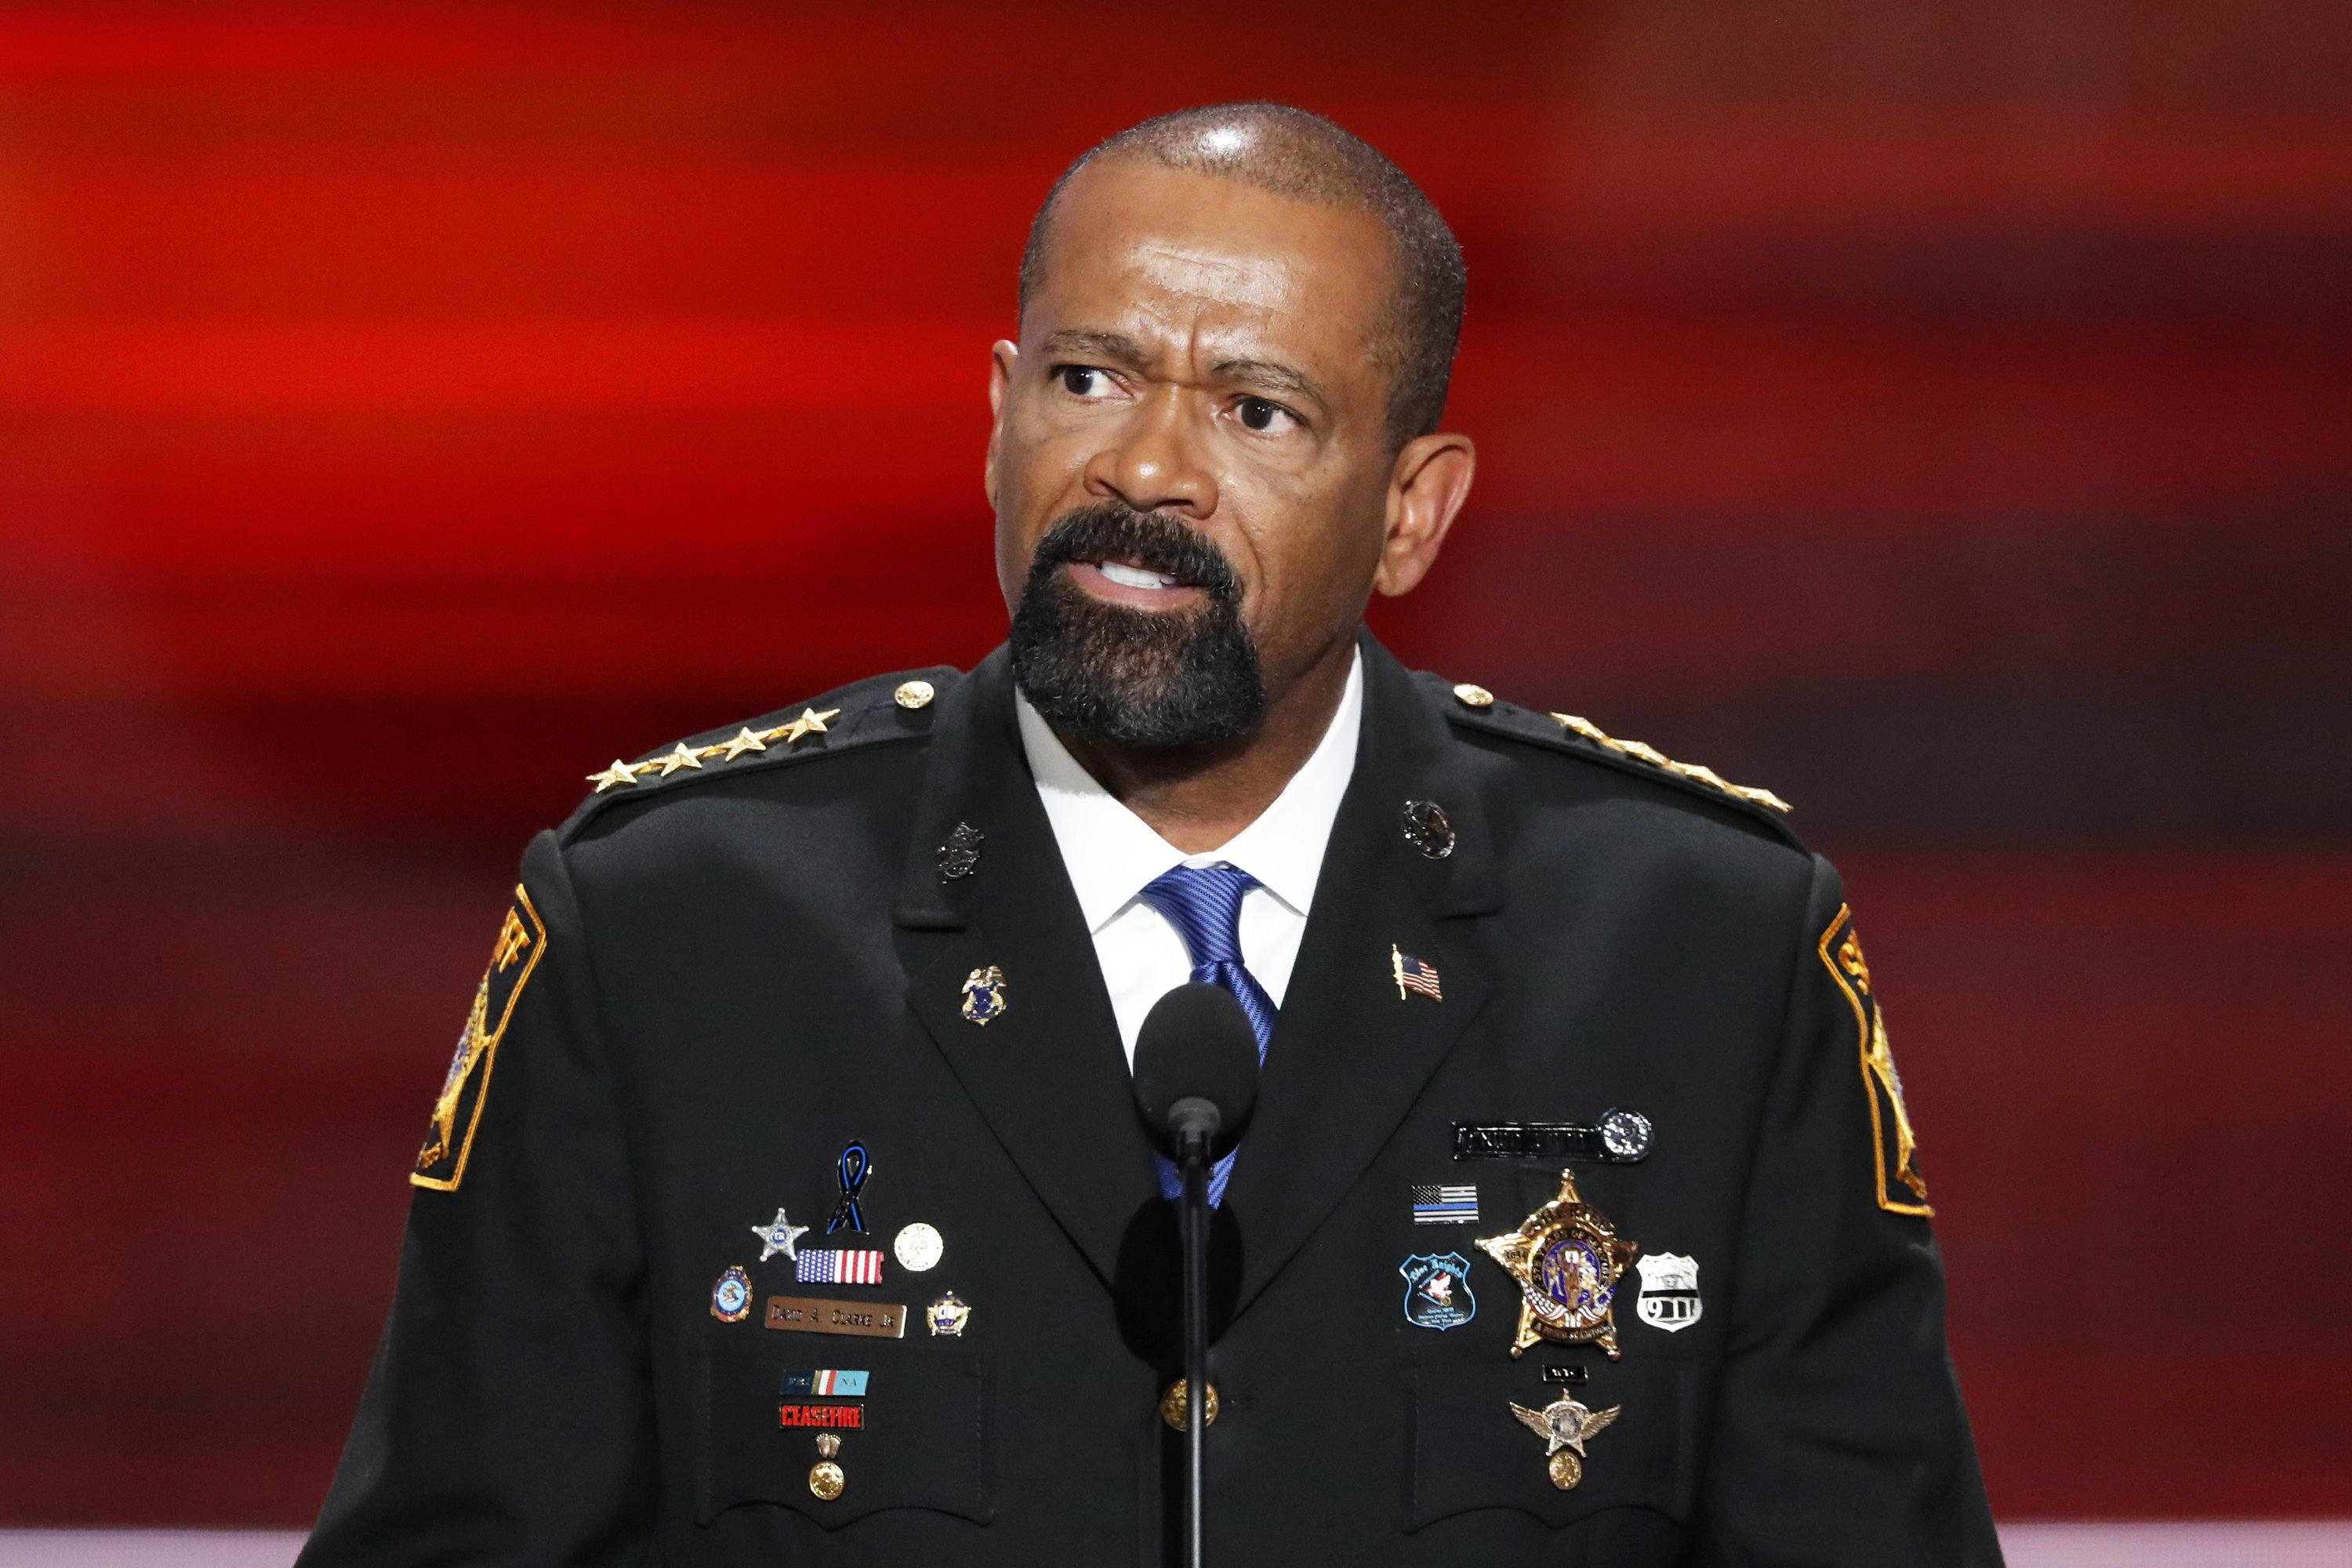 Little sympathy for black shooting victims at GOP convention